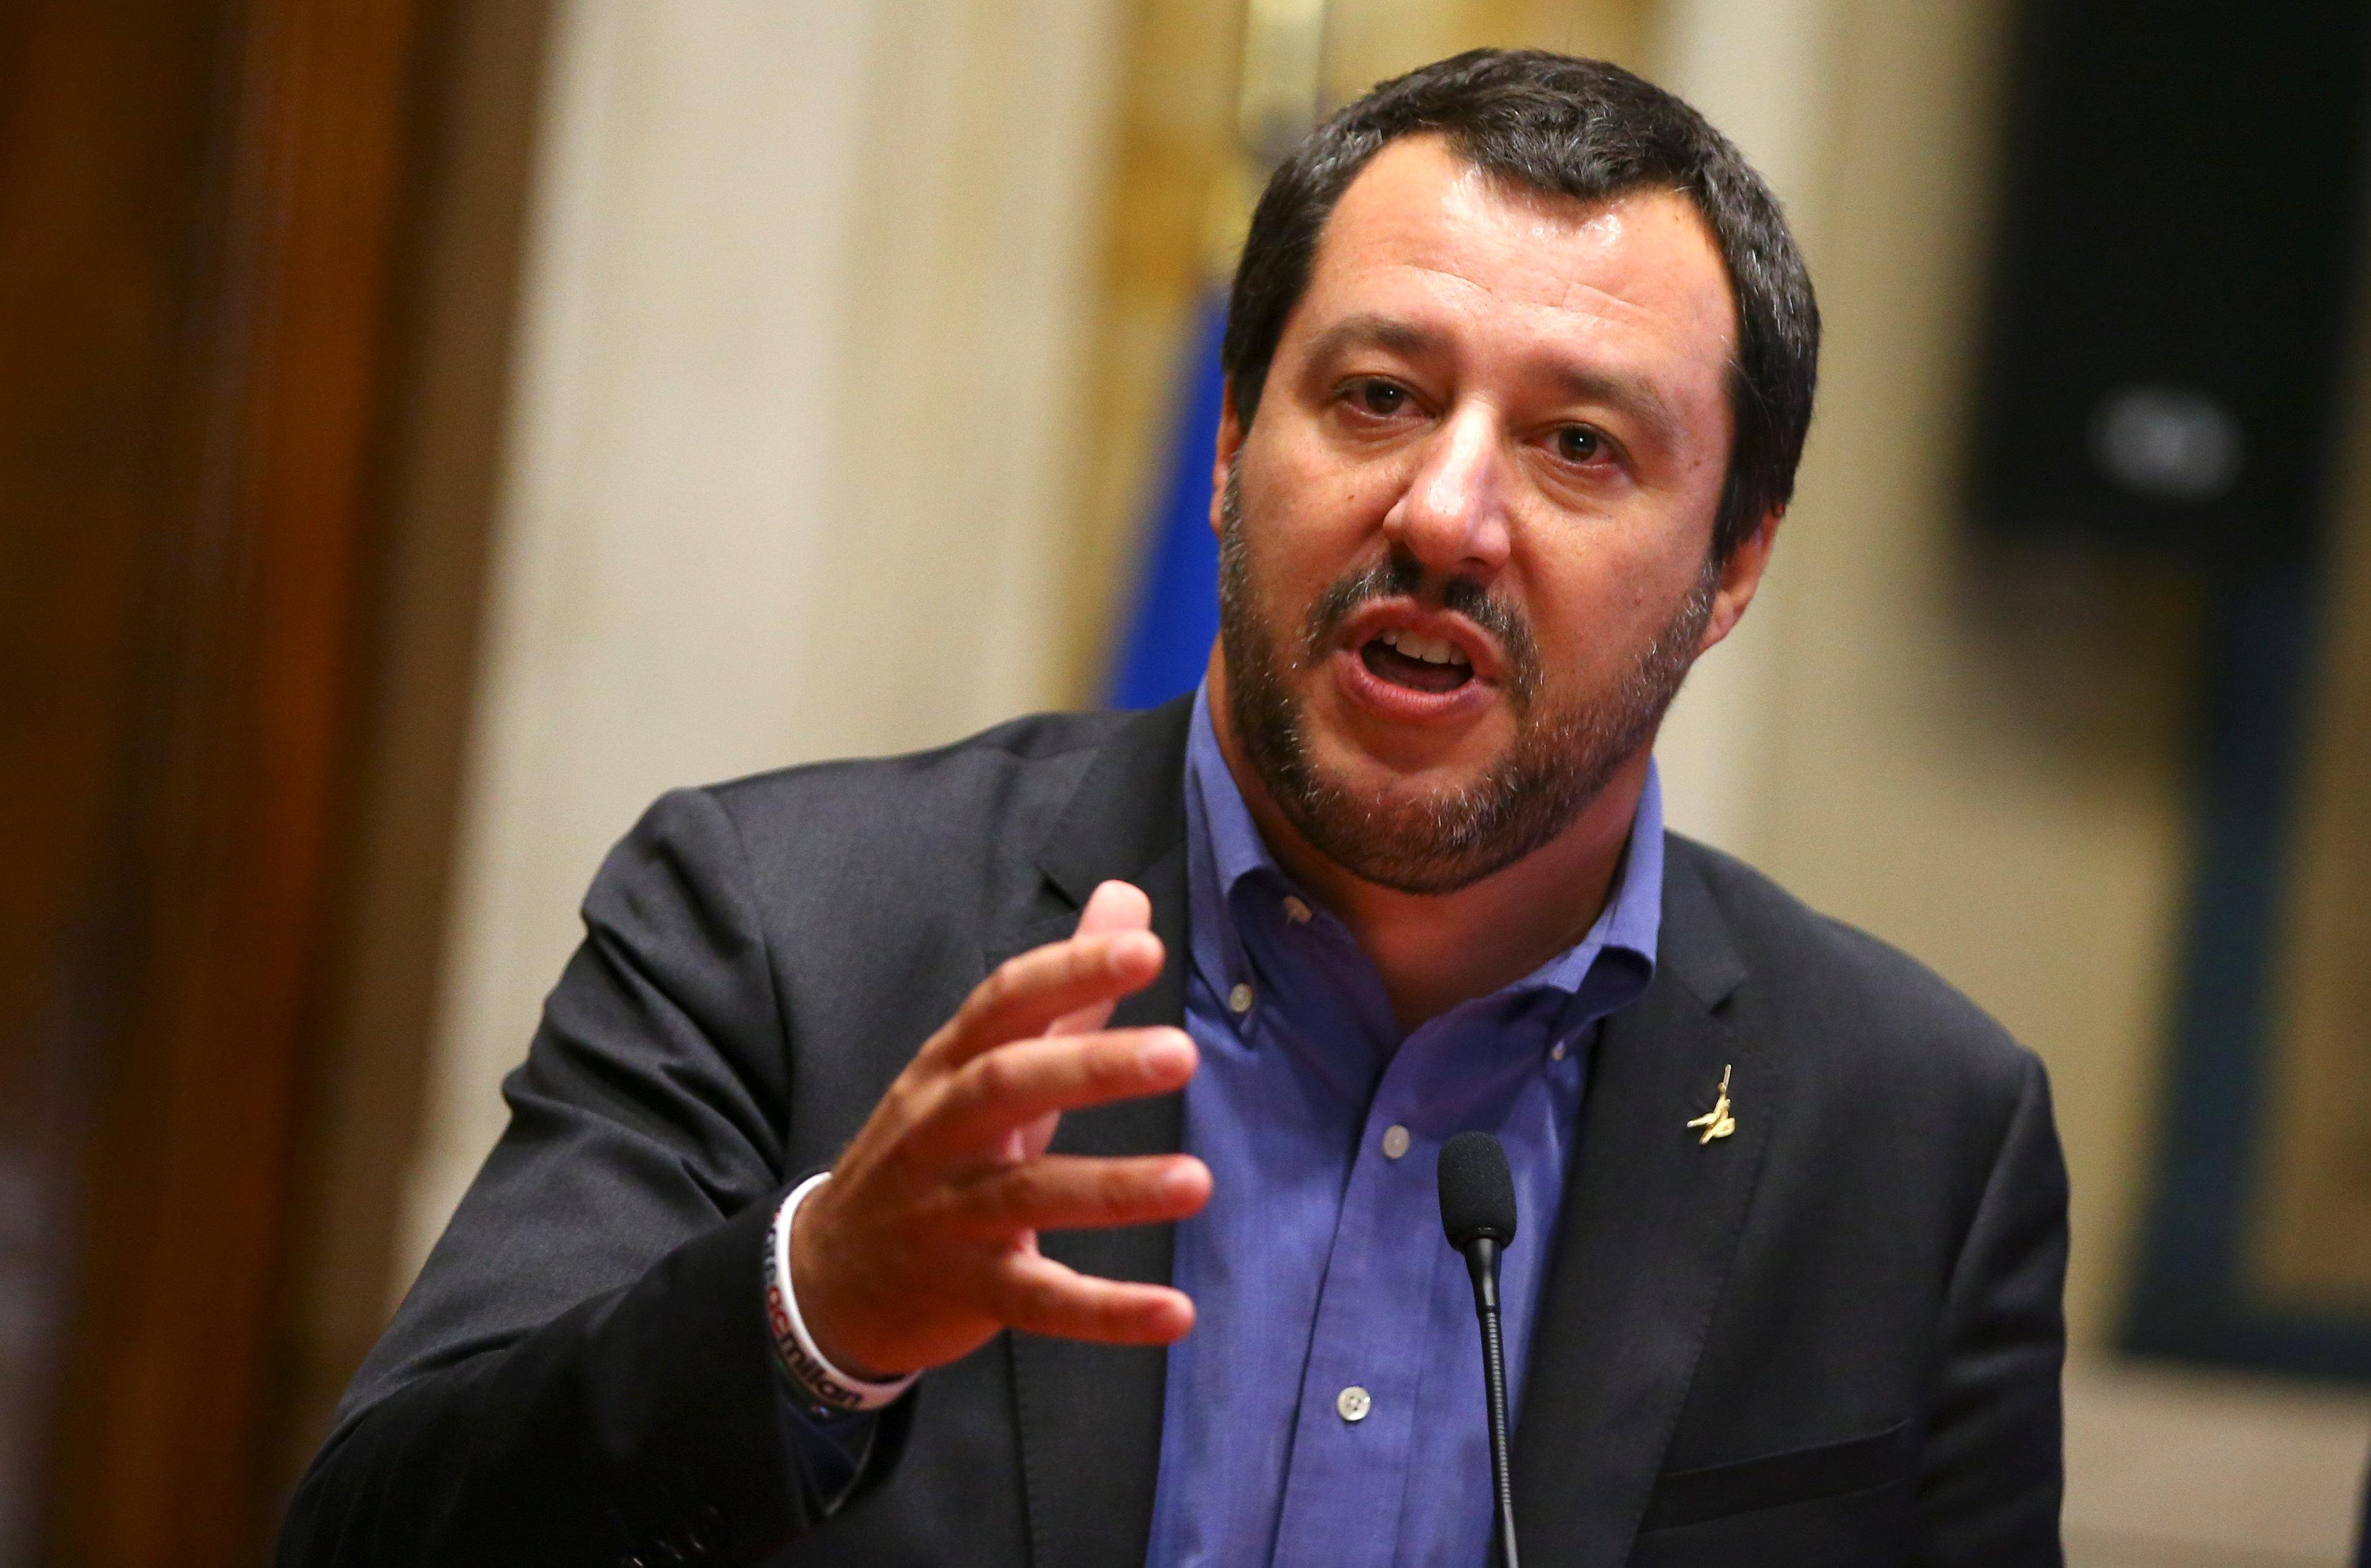 Italy's League leader hopes a new government can pass 2019 budget